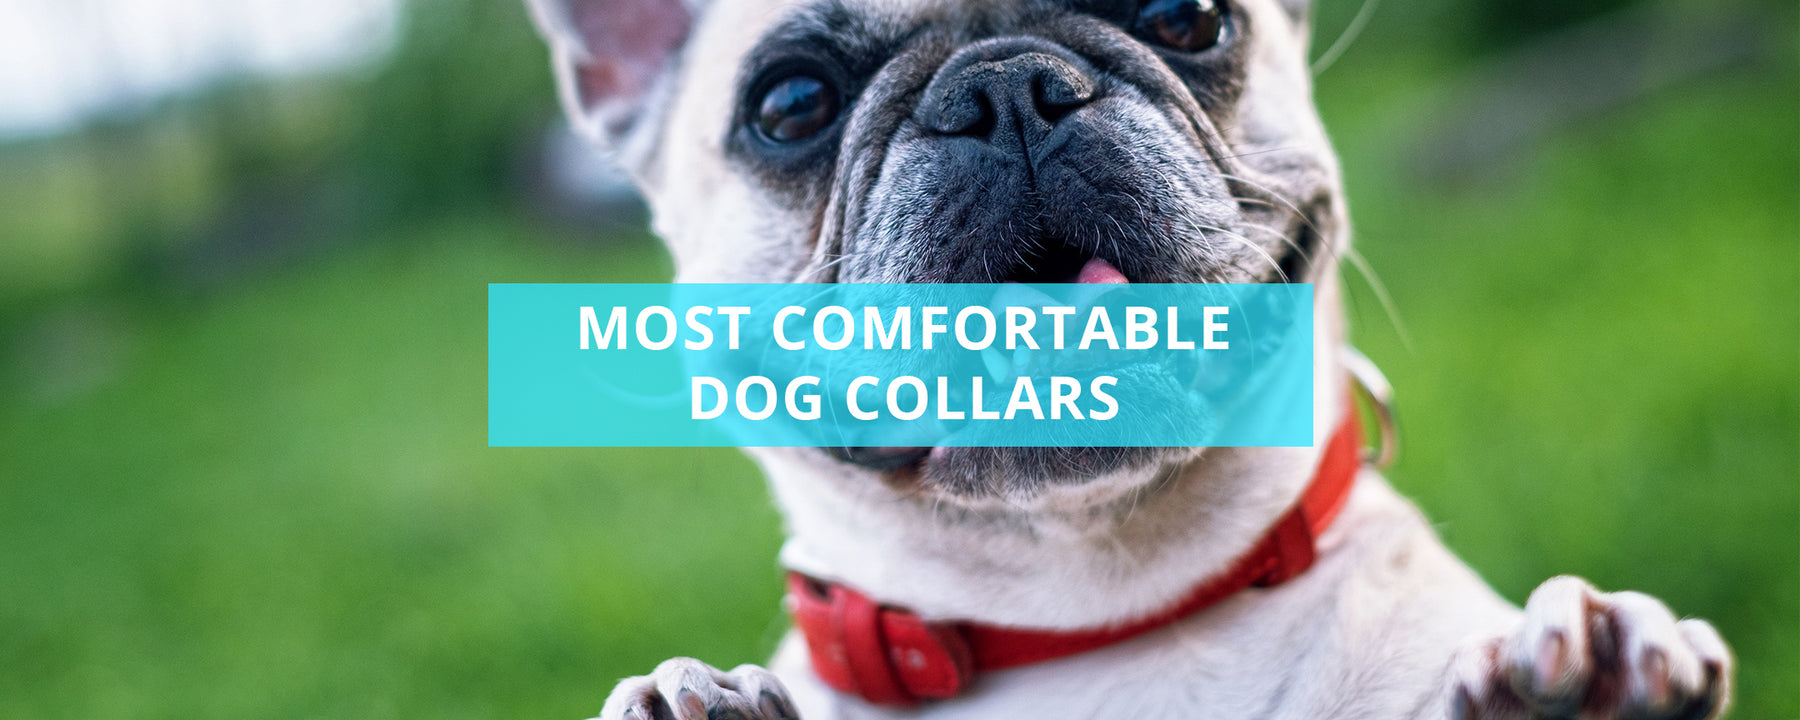 Most Comfortable Dog Collars